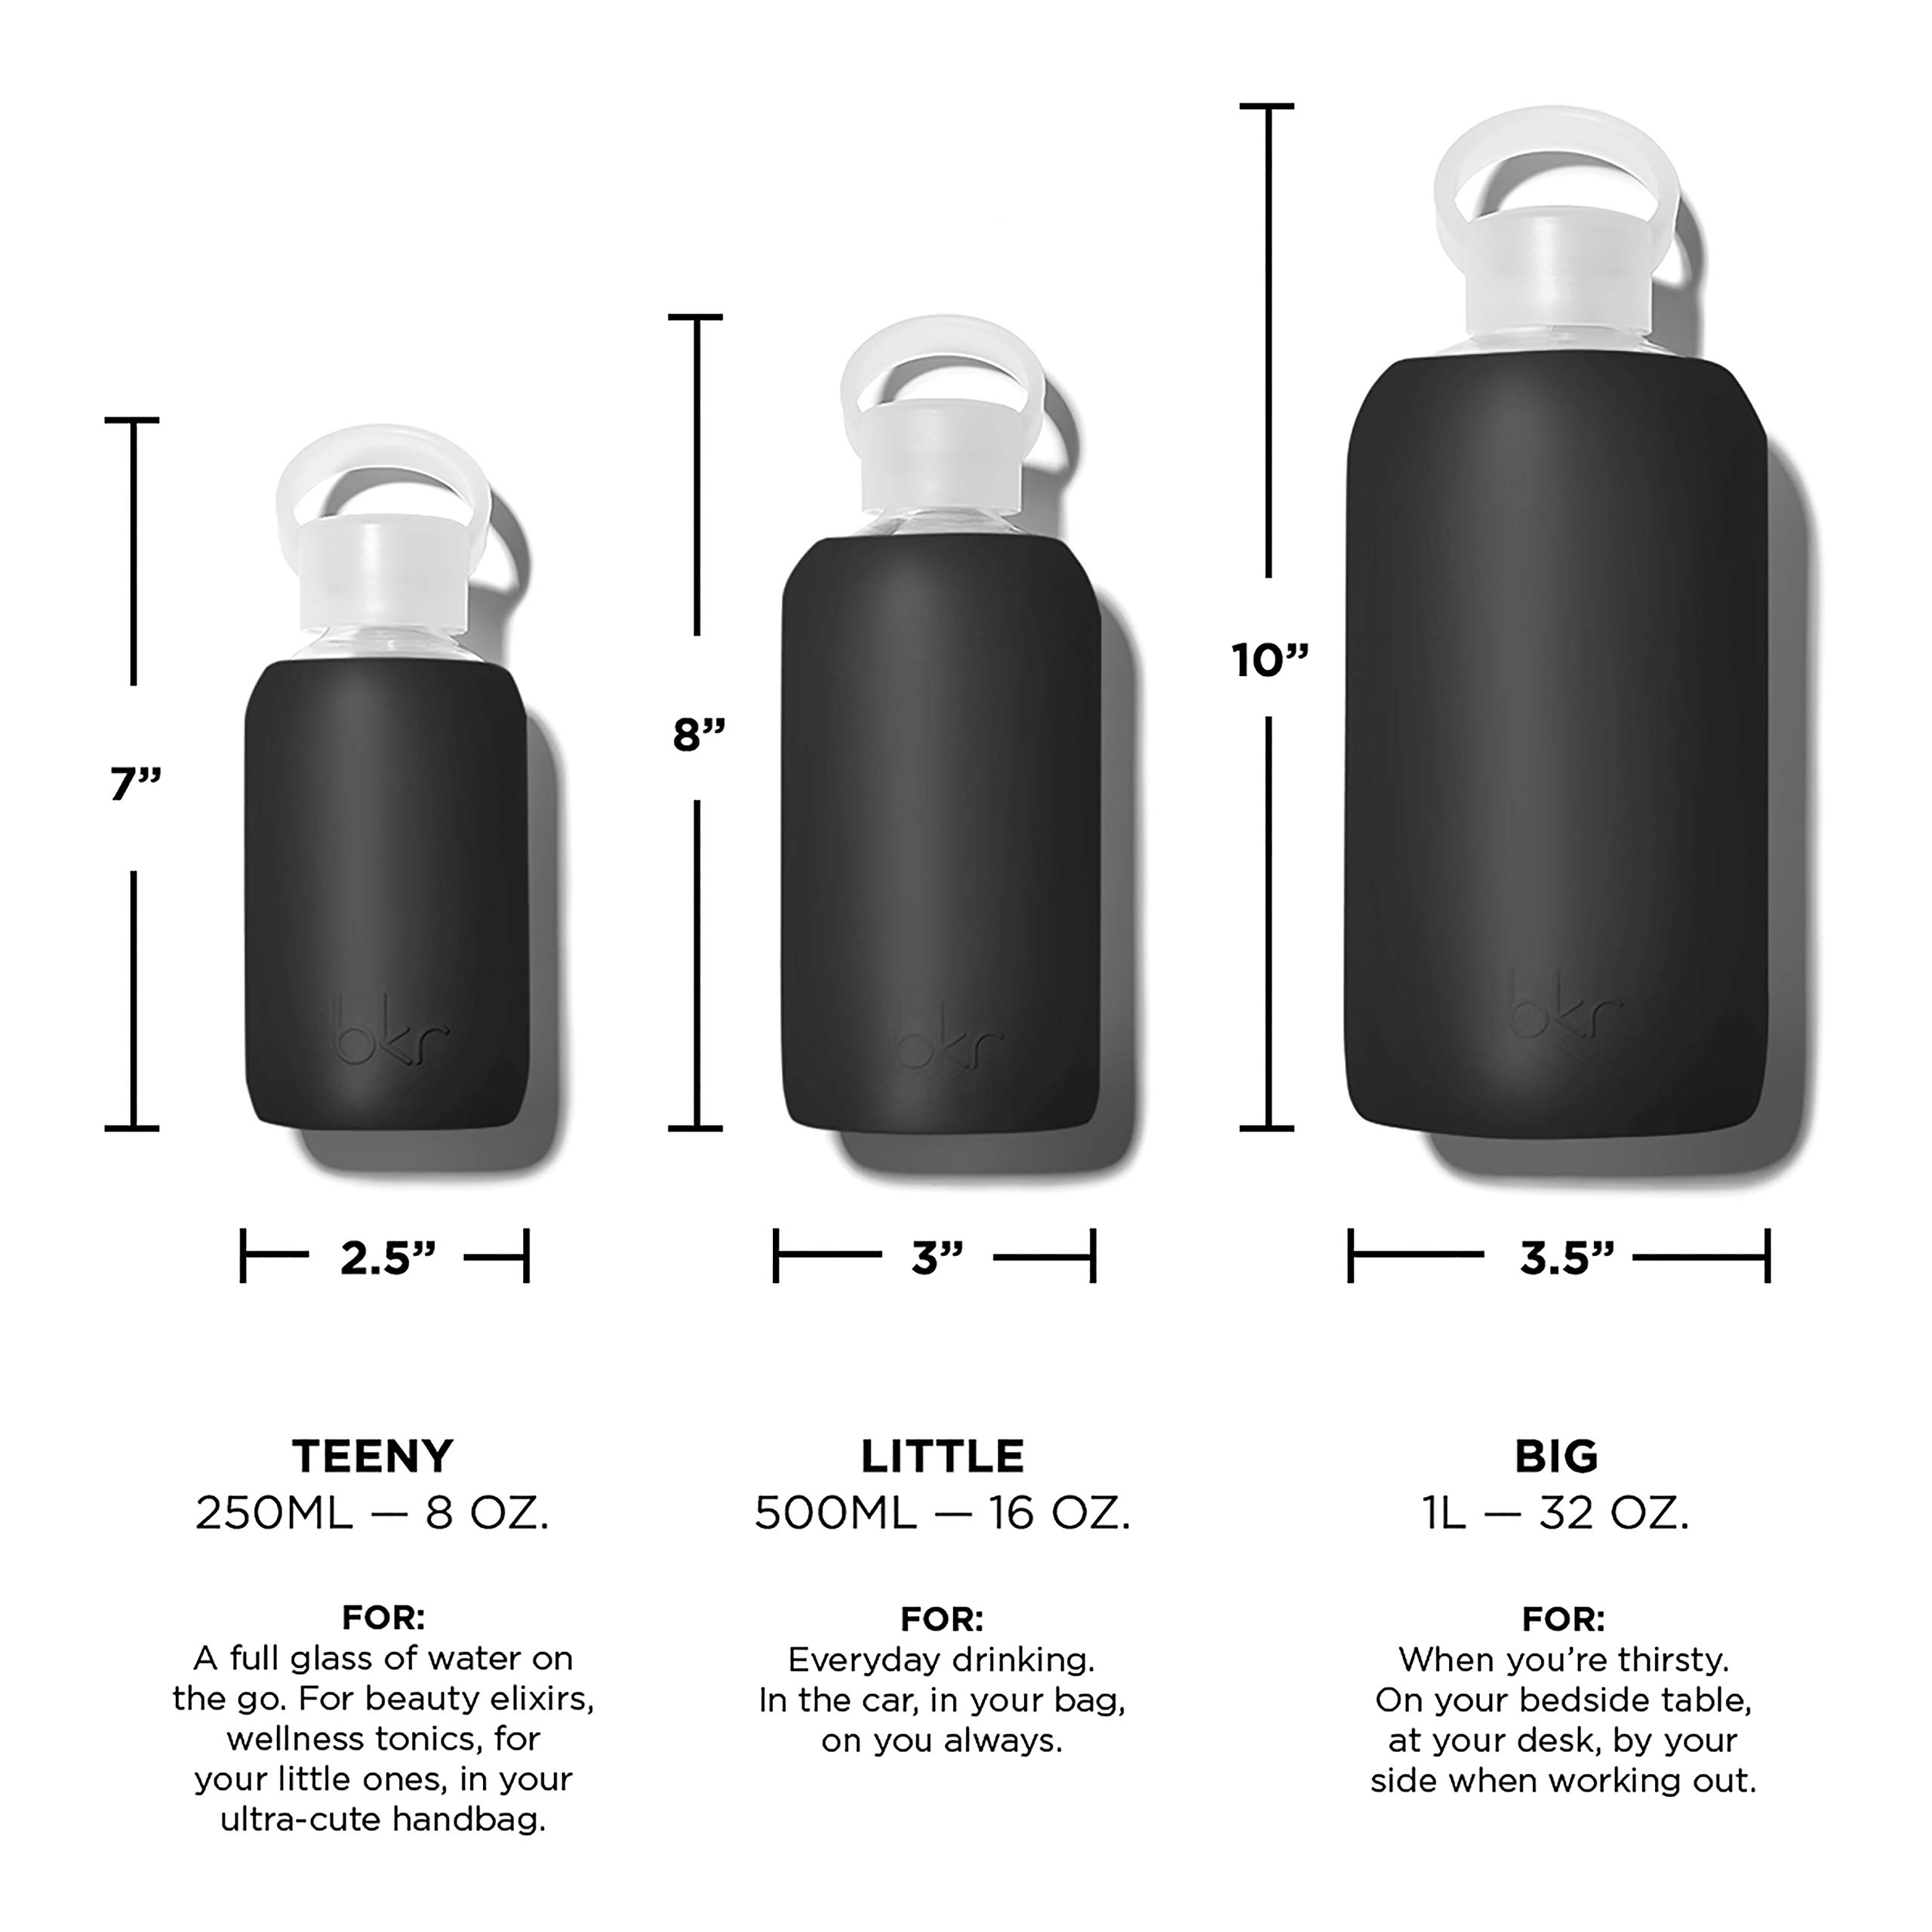 bkr Jet Glass Water Bottle with Smooth Silicone Sleeve for Travel, Narrow Mouth, BPA-Free & Dishwasher Safe, Opaque Black, 16 oz / 500 mL by bkr (Image #9)